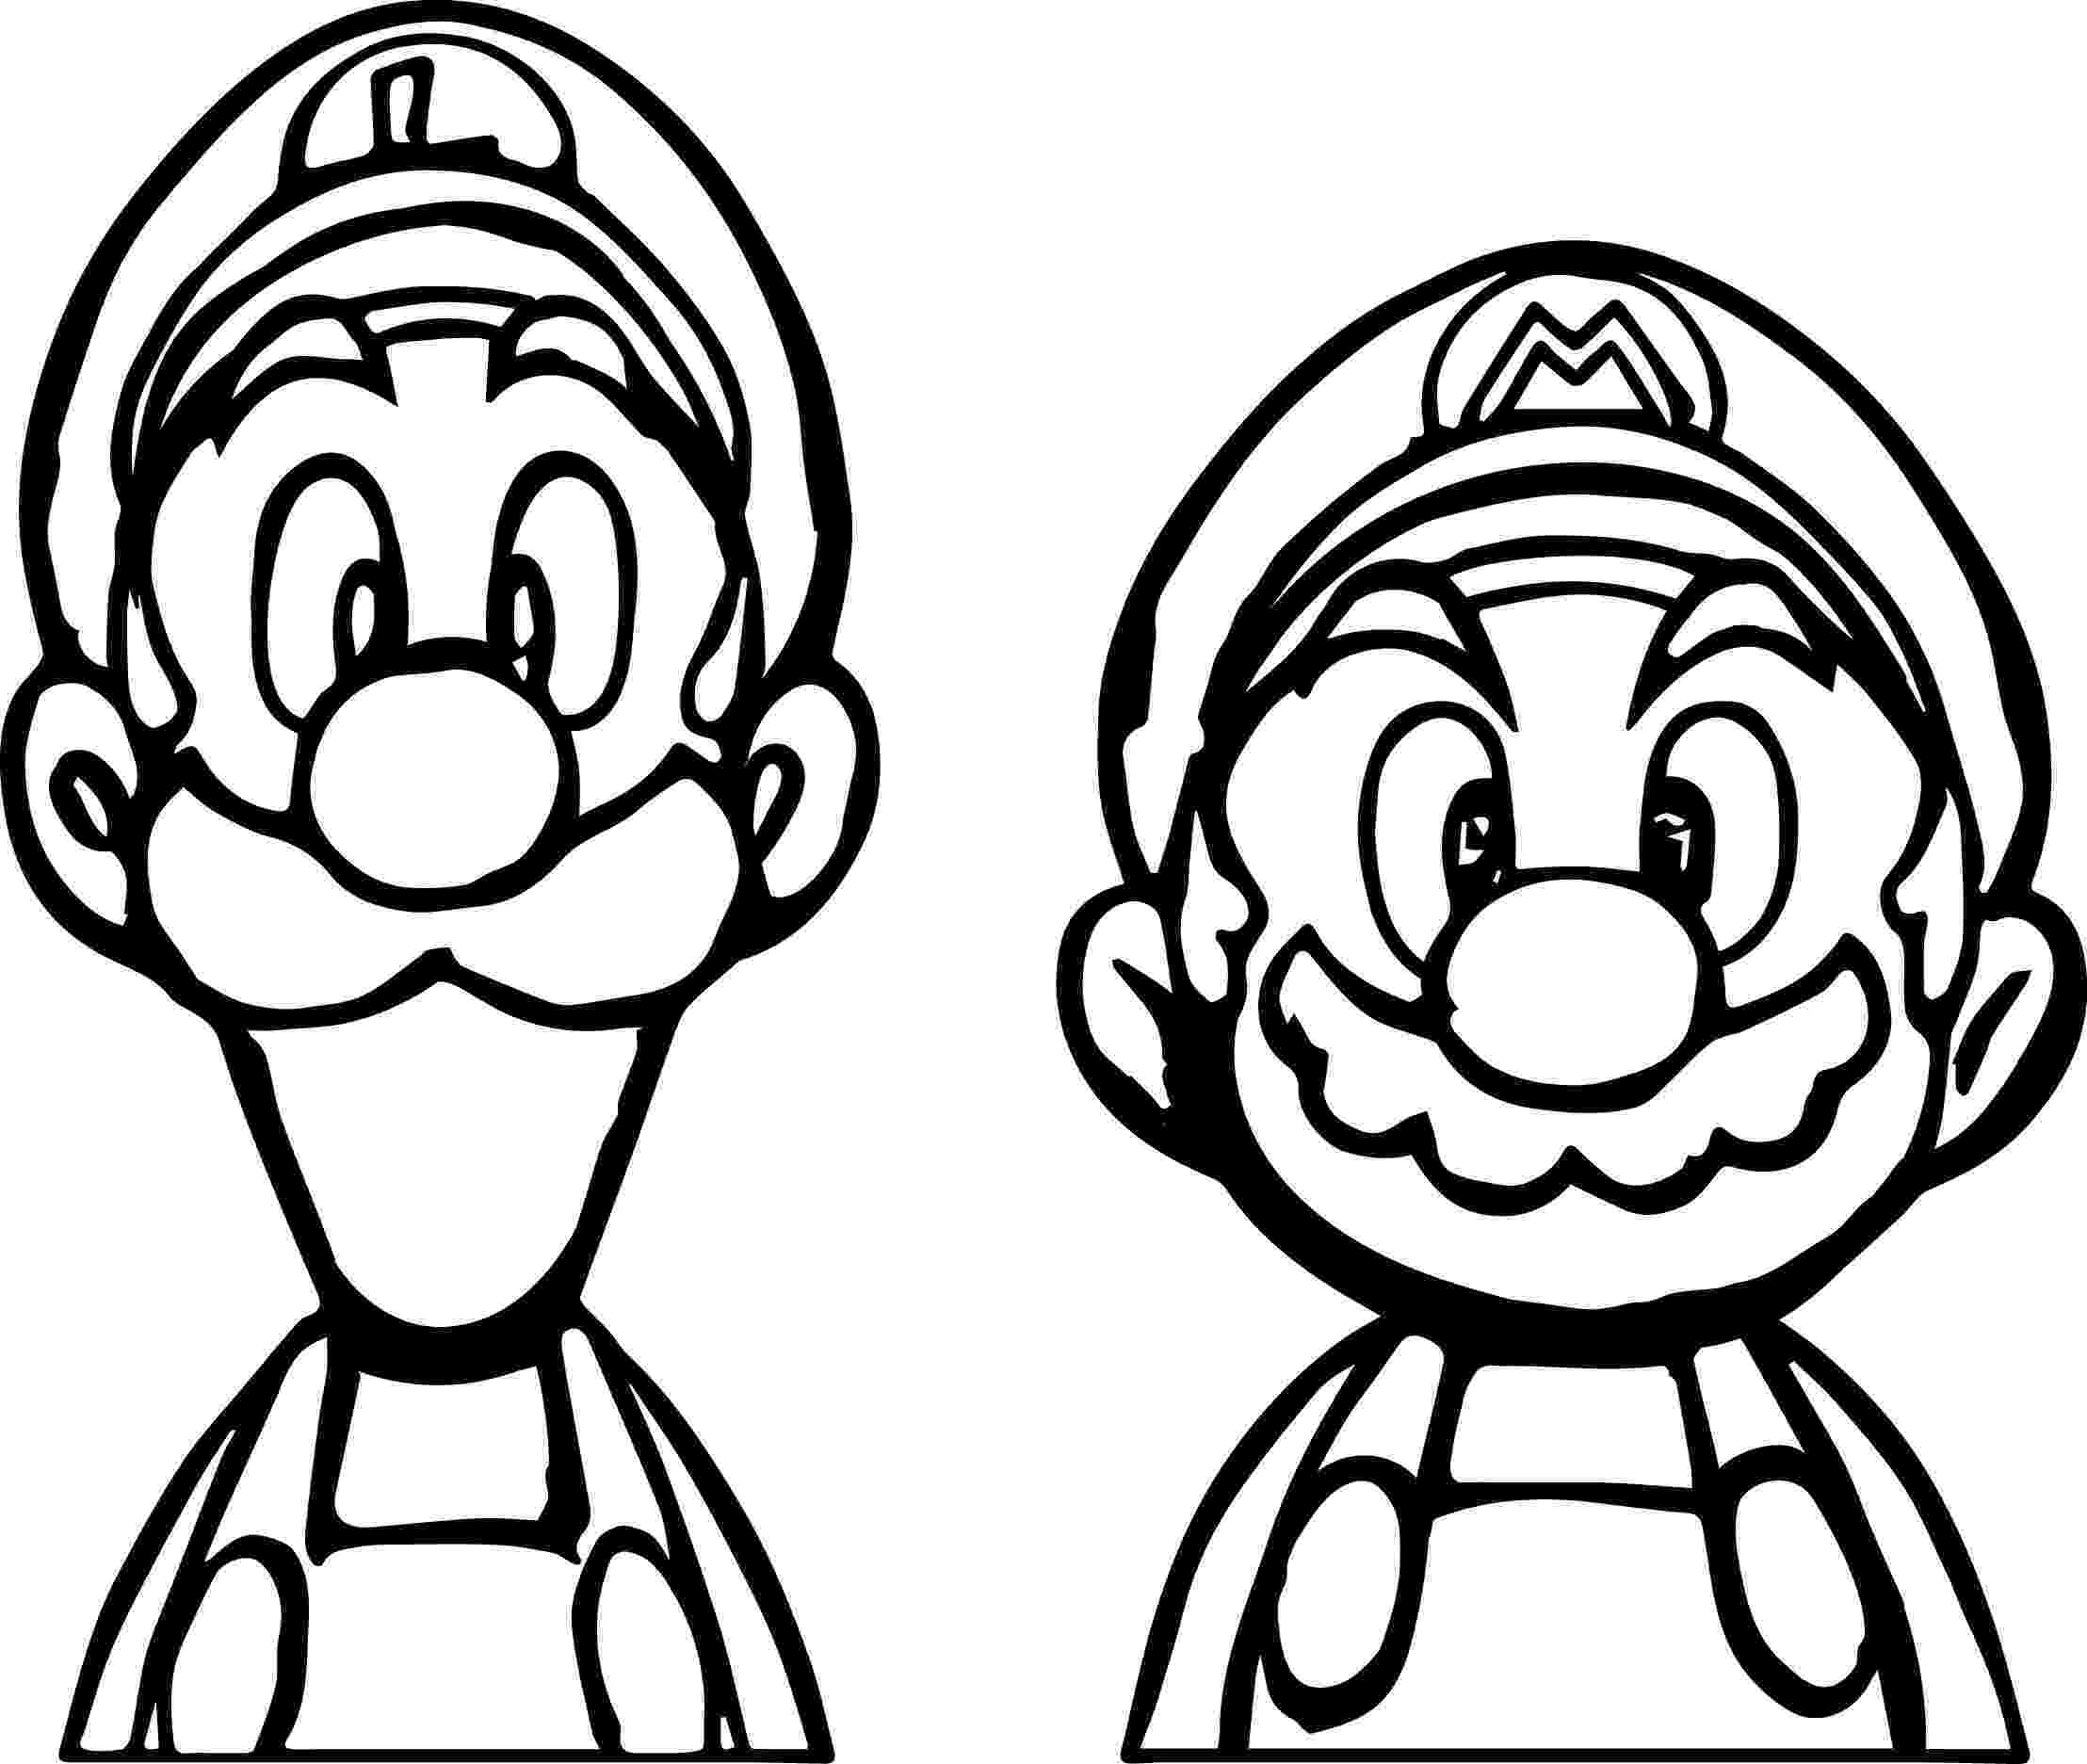 mario 3d world coloring pages coloring pages mario 3d world coloring home coloring world 3d mario pages